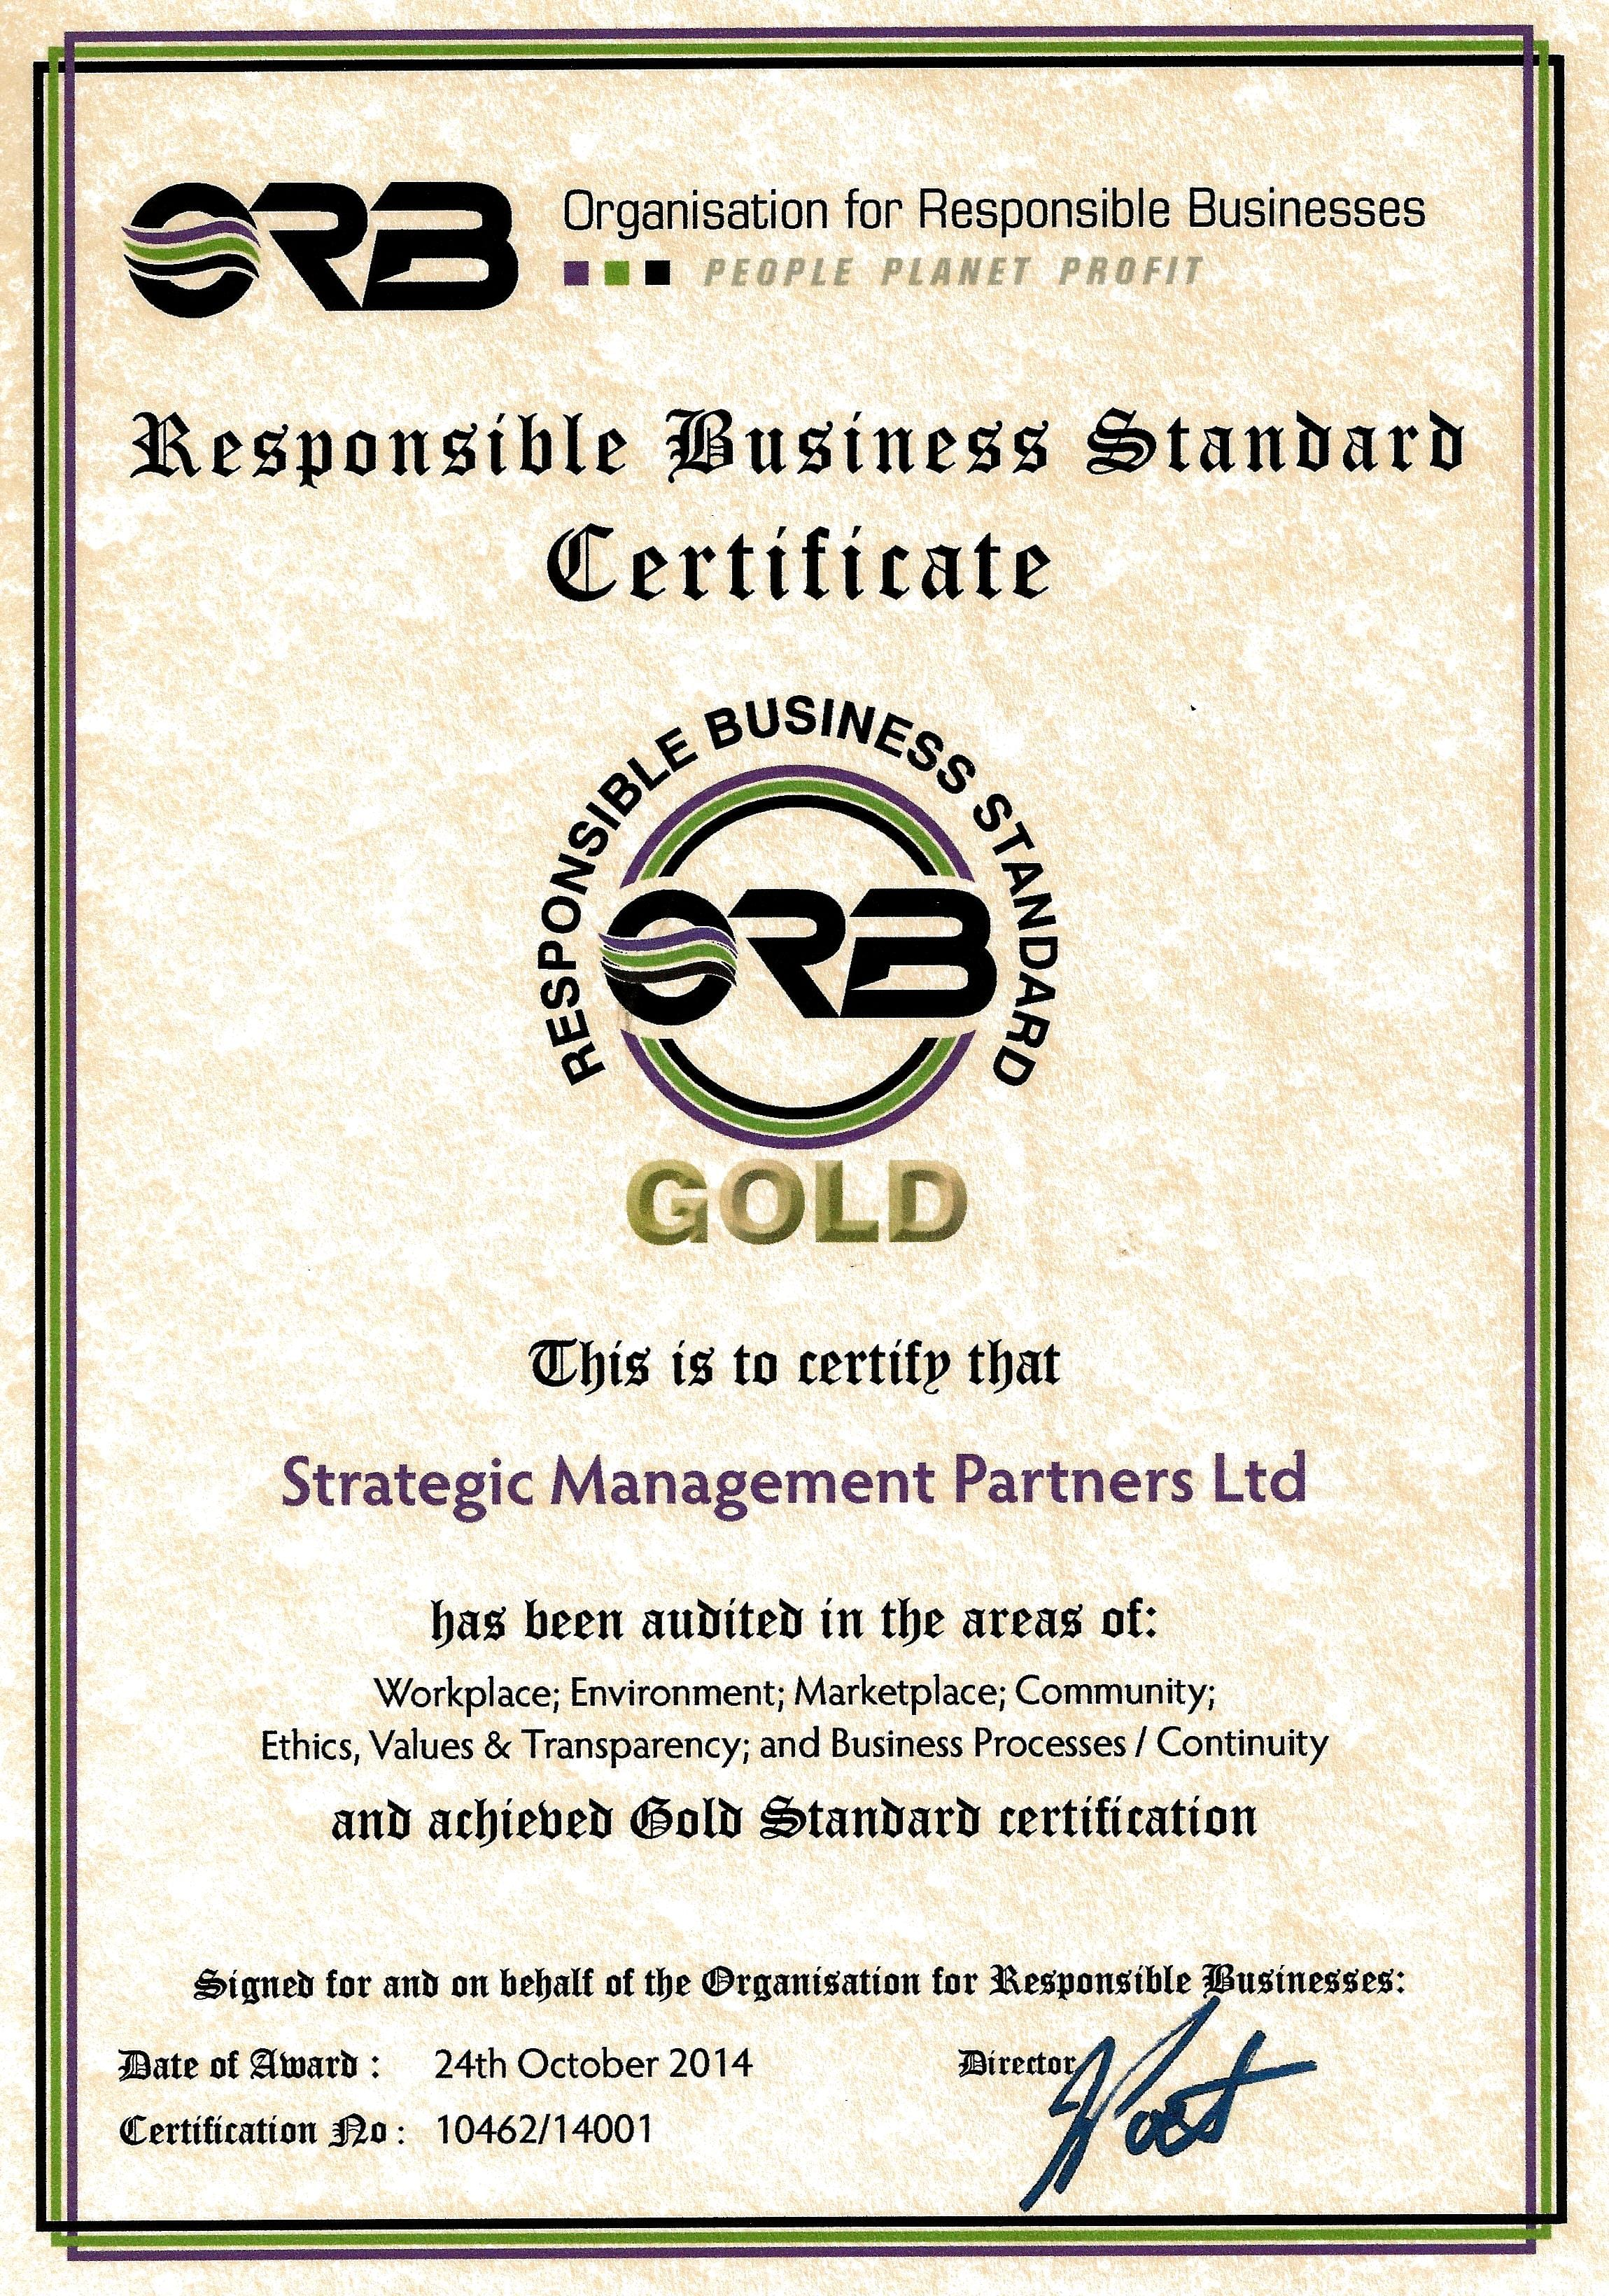 Responsible business standards strategic management partners 2014 orb smp certificate 1betcityfo Image collections